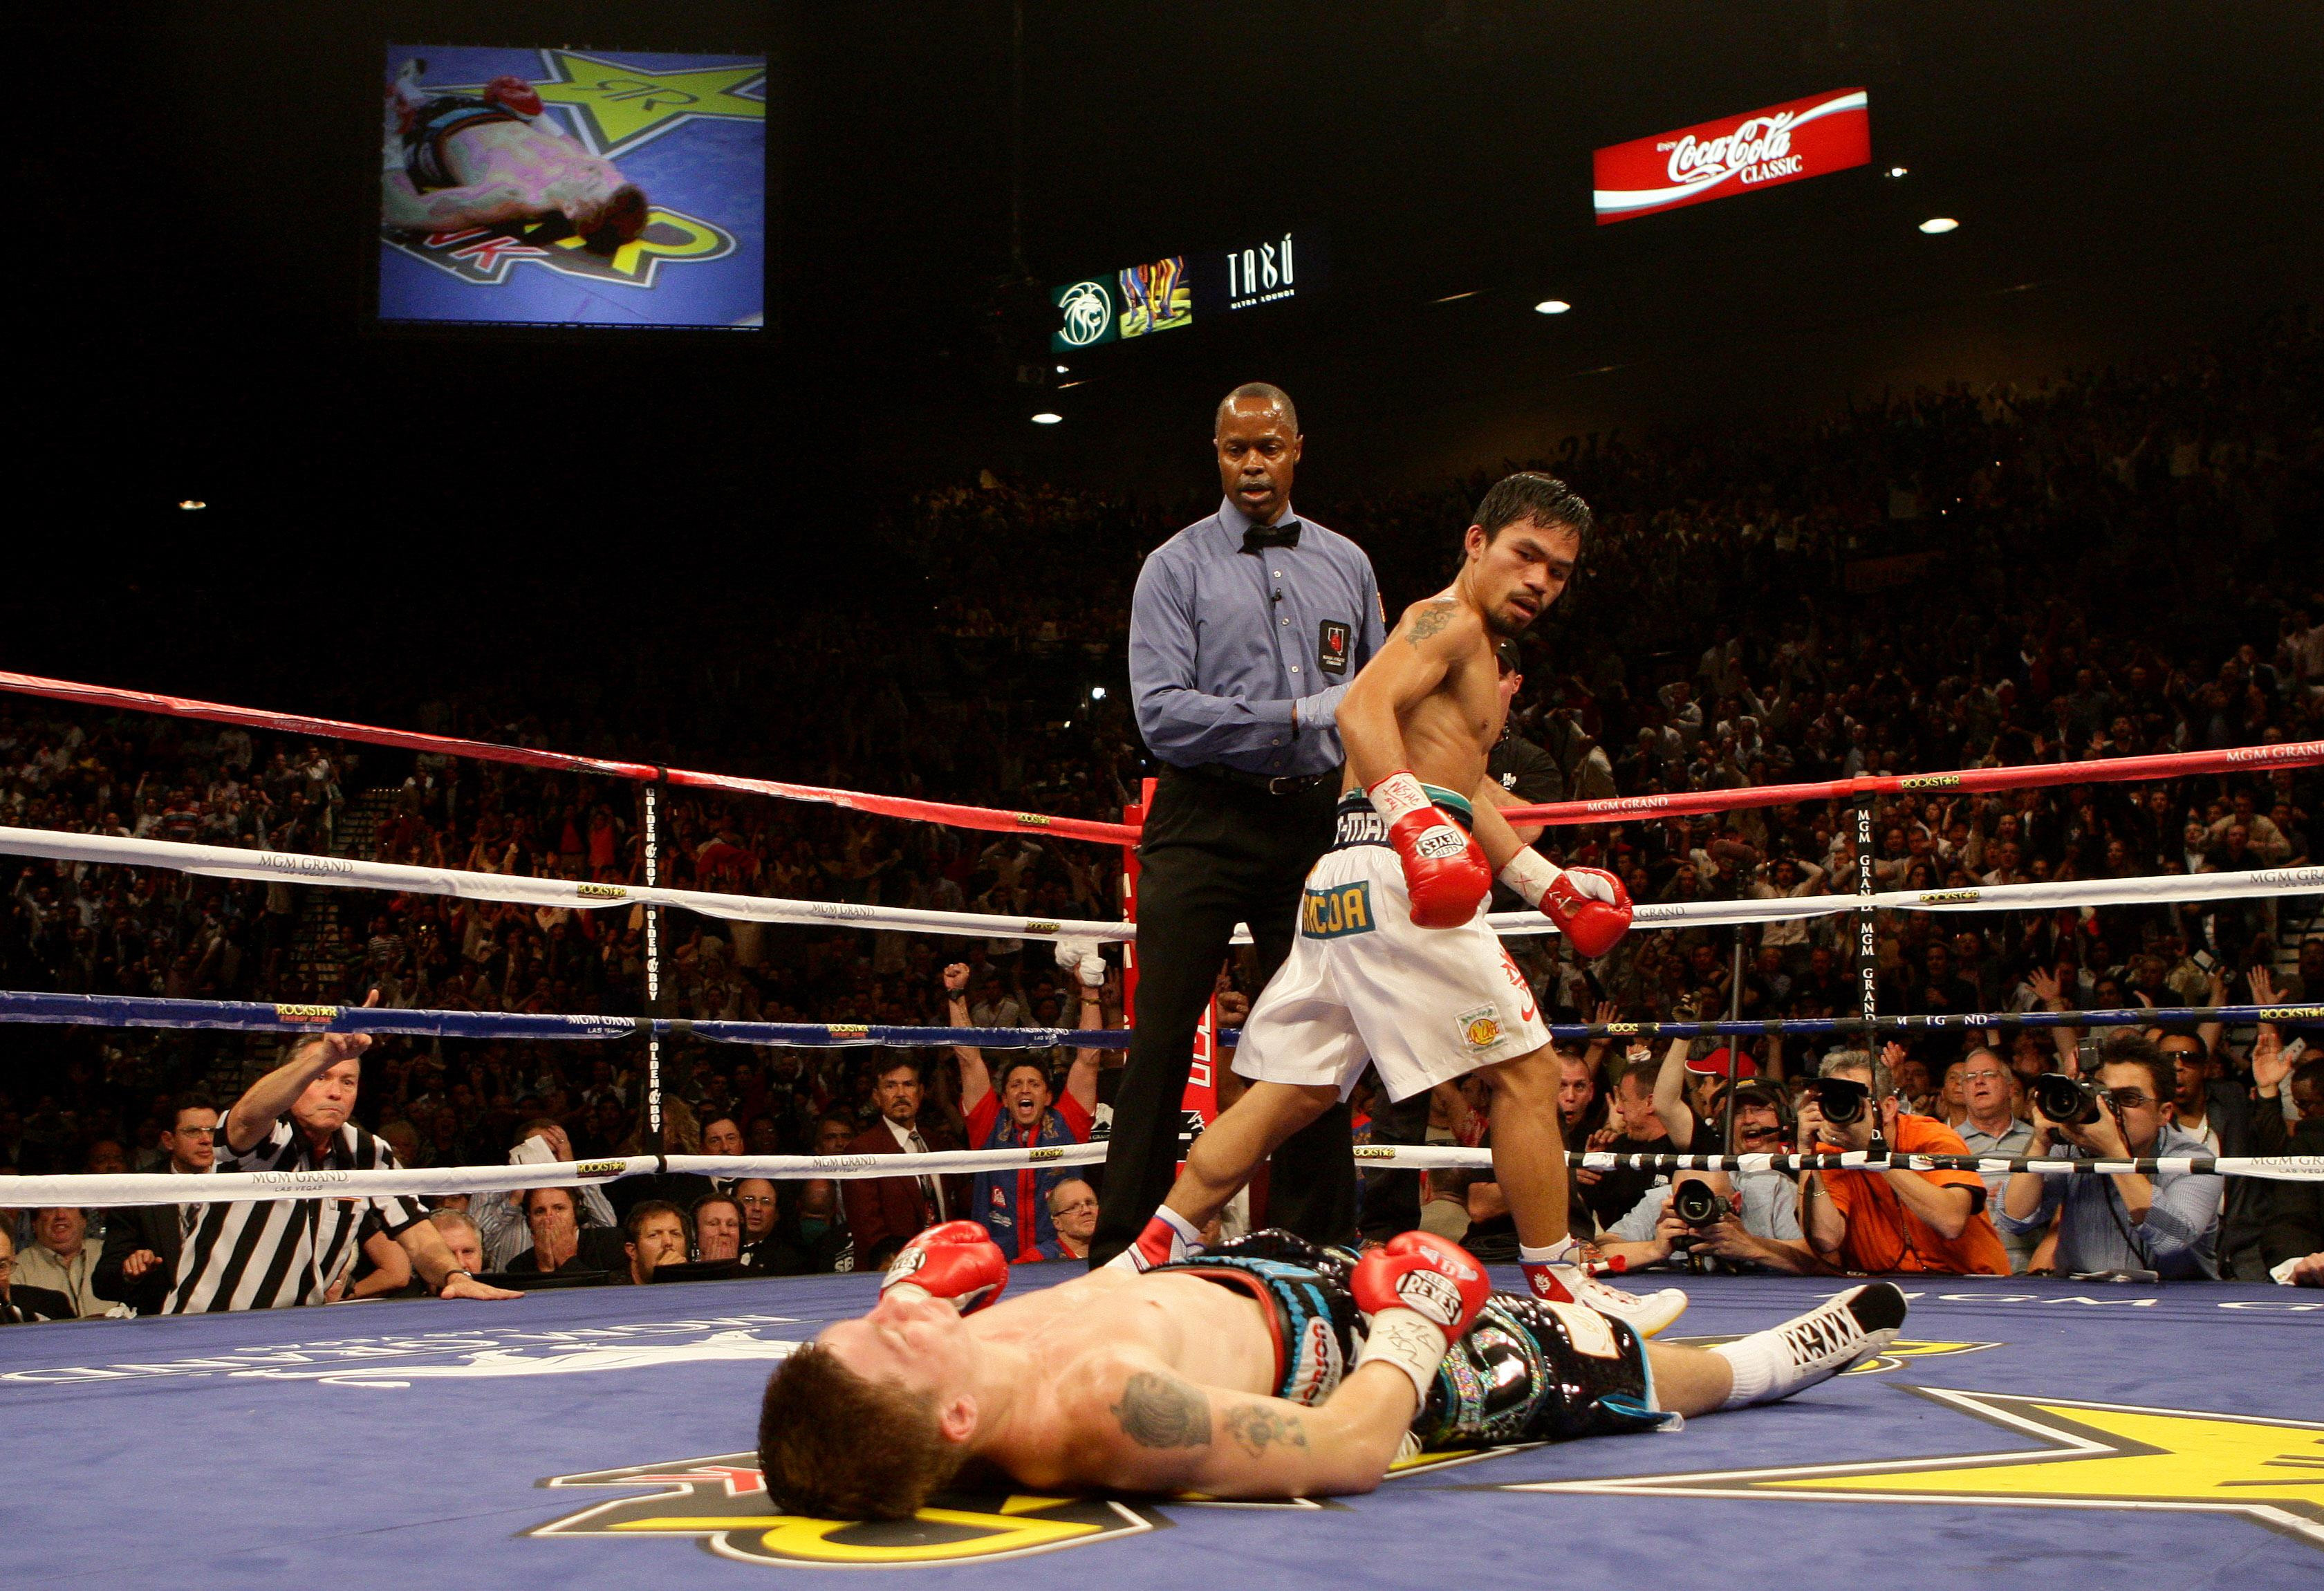 Boxing - Light-Welterweight Bout - Ricky Hatton v Manny Pacquiao - MGM Grand